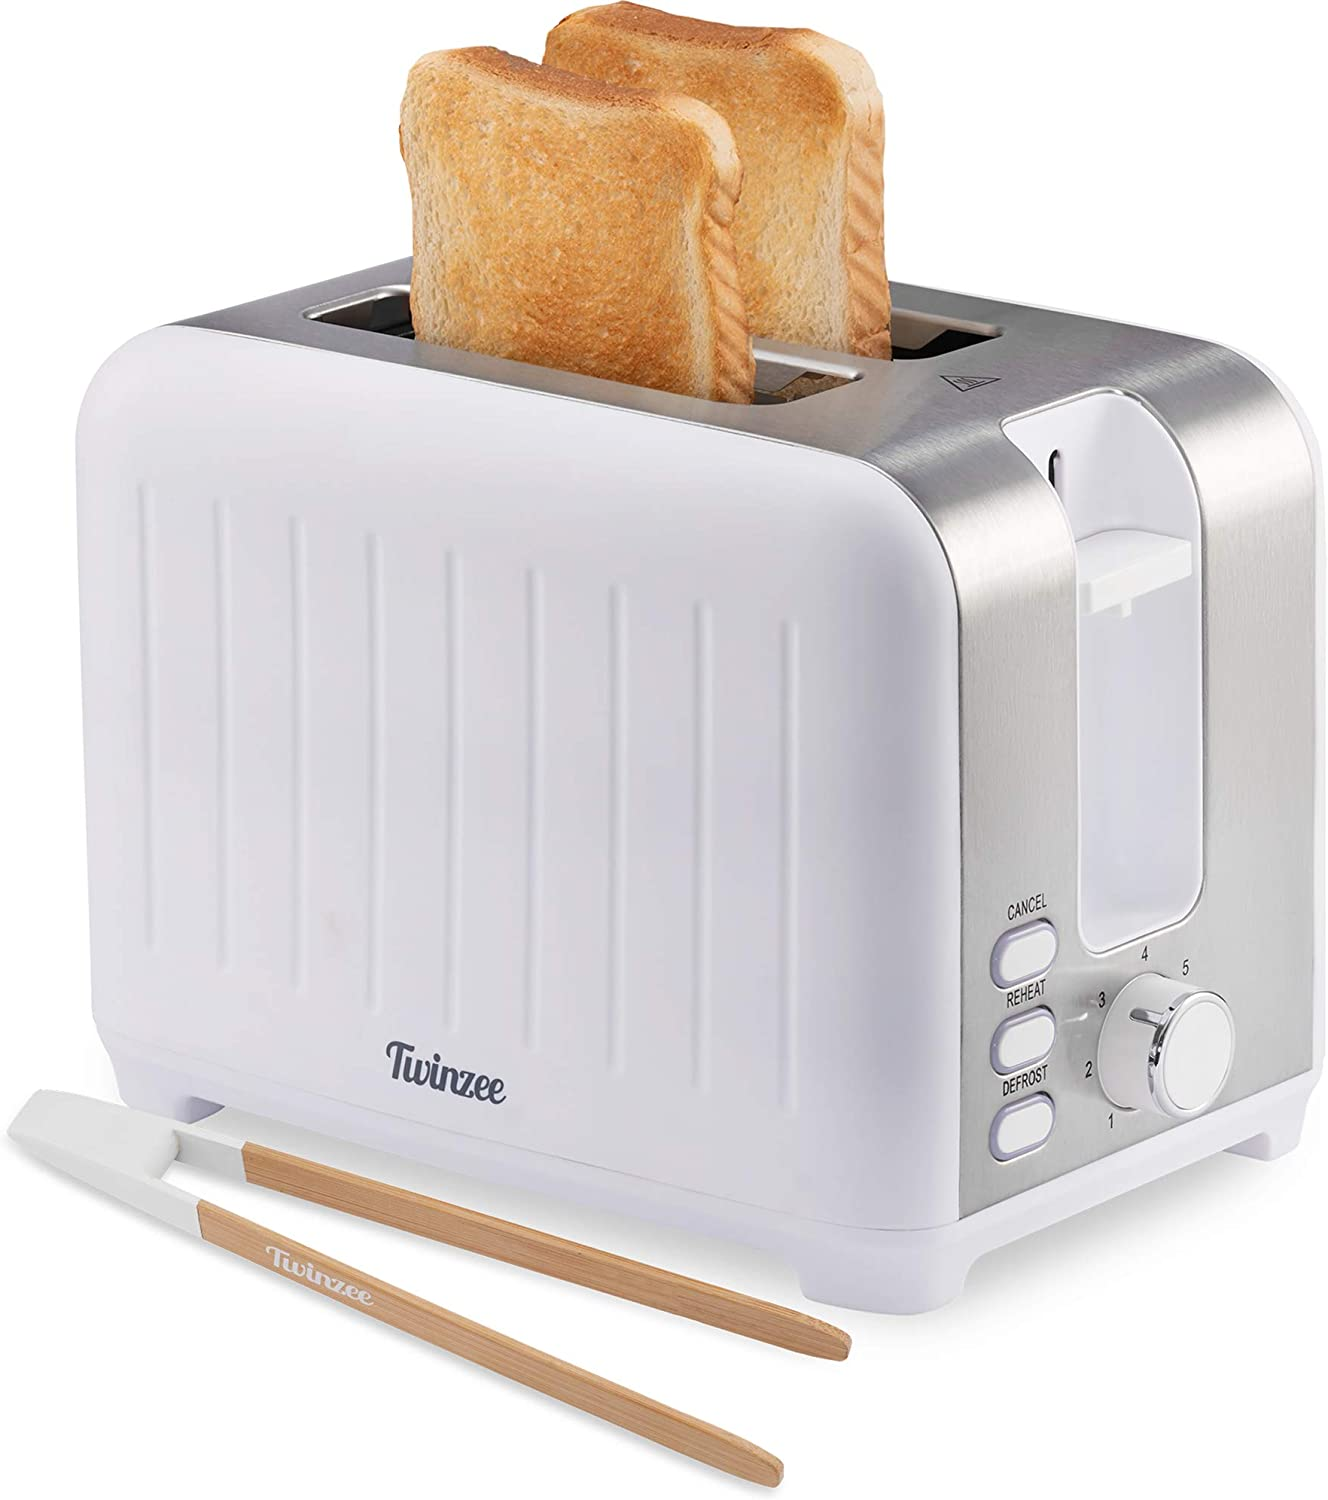 Twinzee Wide Slot Toaster 2 Slice - 3 in 1 Retro Toaster, Matte White and Stainless Steel - Small Toaster with Free Bamboo Tongs Clips and Crumb Tray - 7 Toasting Settings, 850W Toasters - Vintage Toster